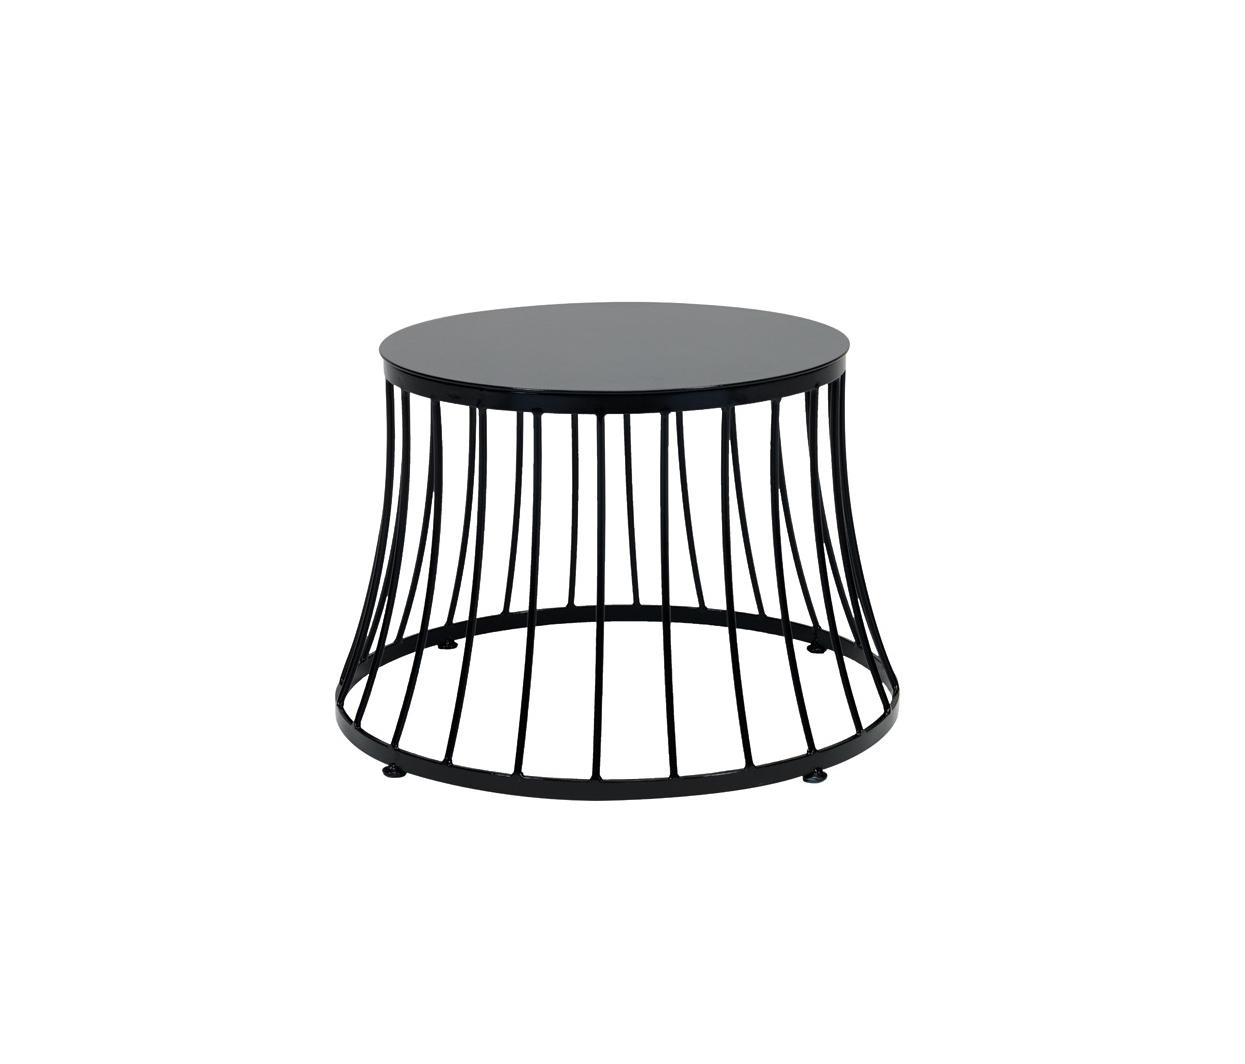 table basse clessidra tables d 39 appoint de jardin de ethimo architonic. Black Bedroom Furniture Sets. Home Design Ideas